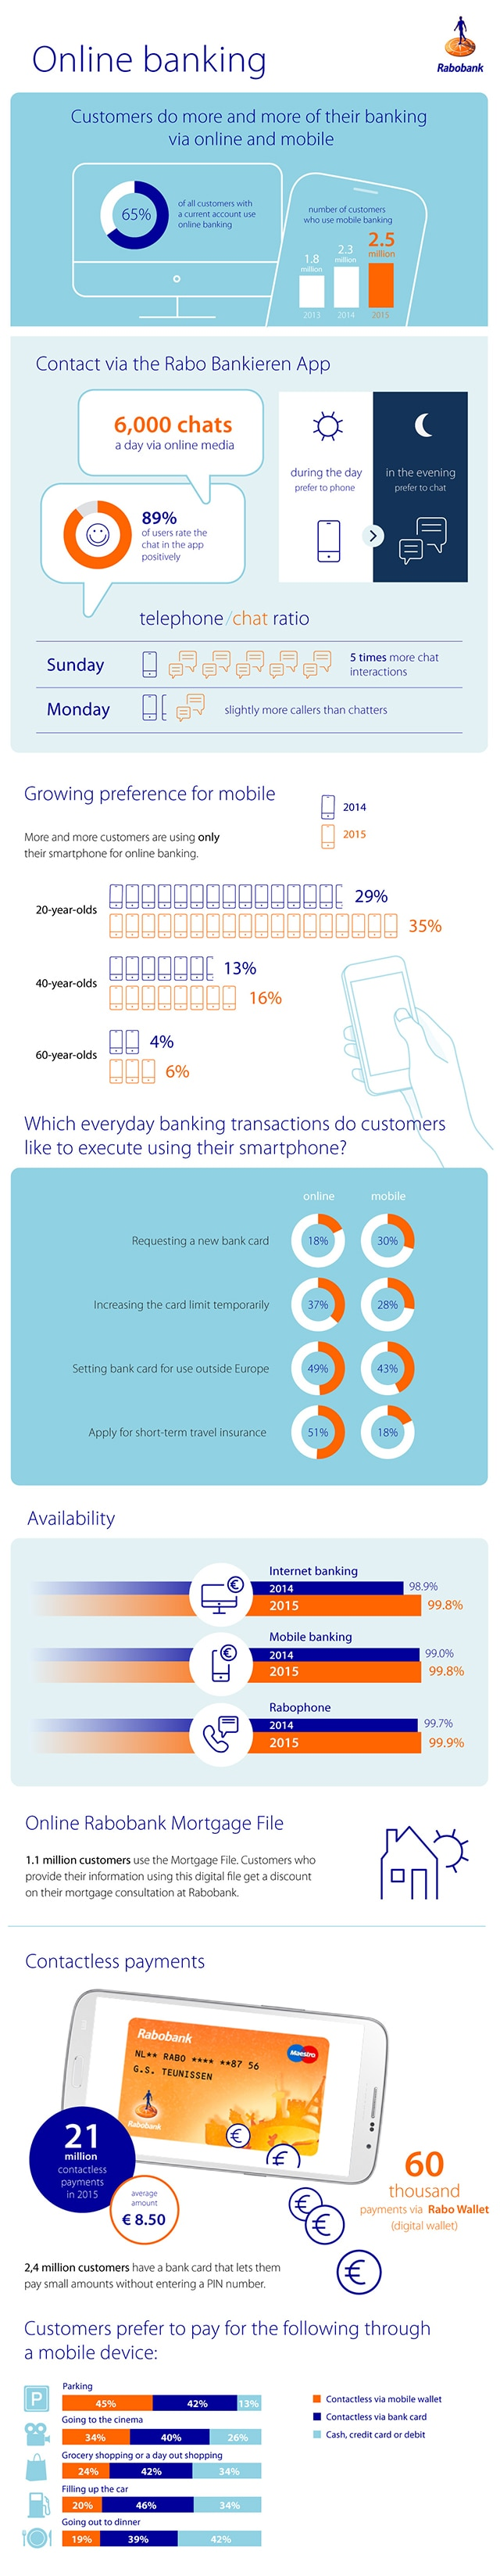 Infographic online banking